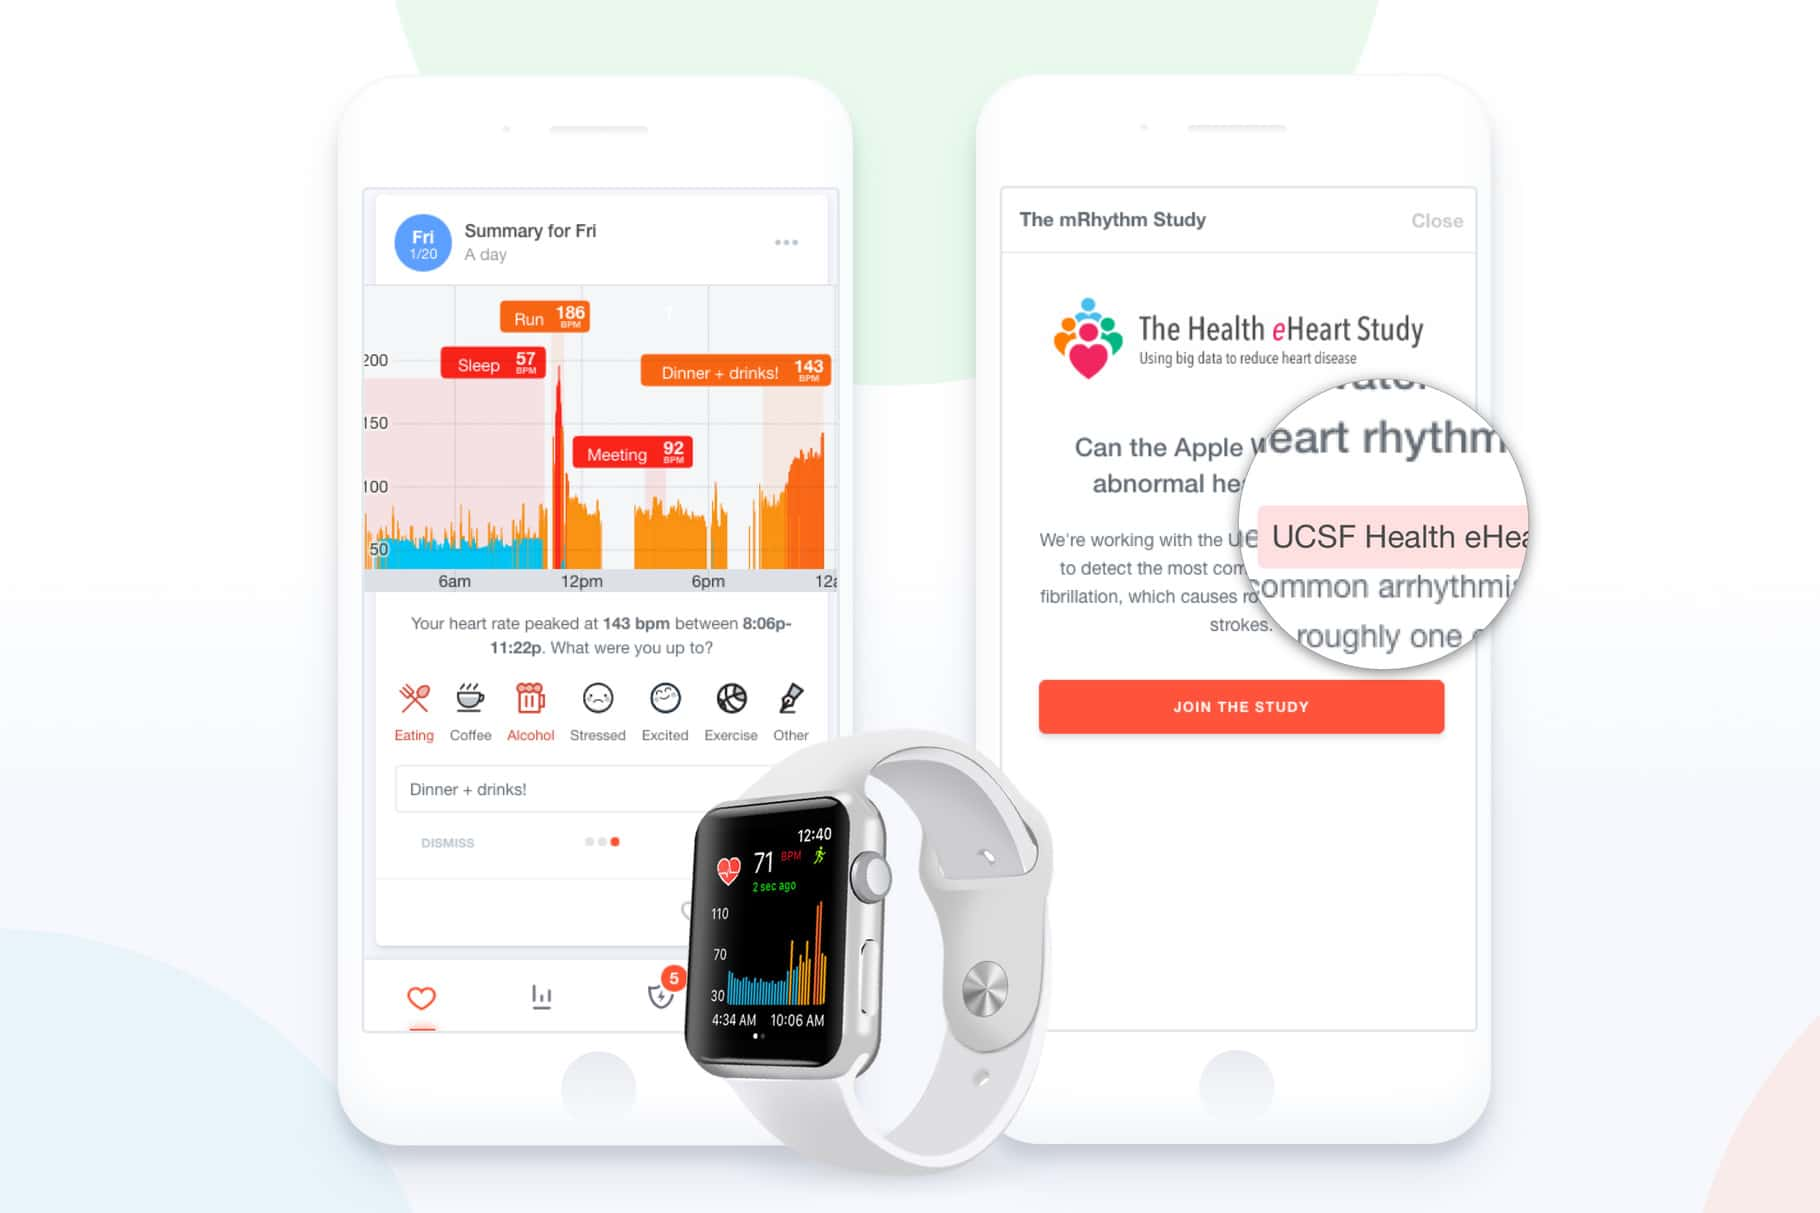 cardiogram-apple-watch-210517